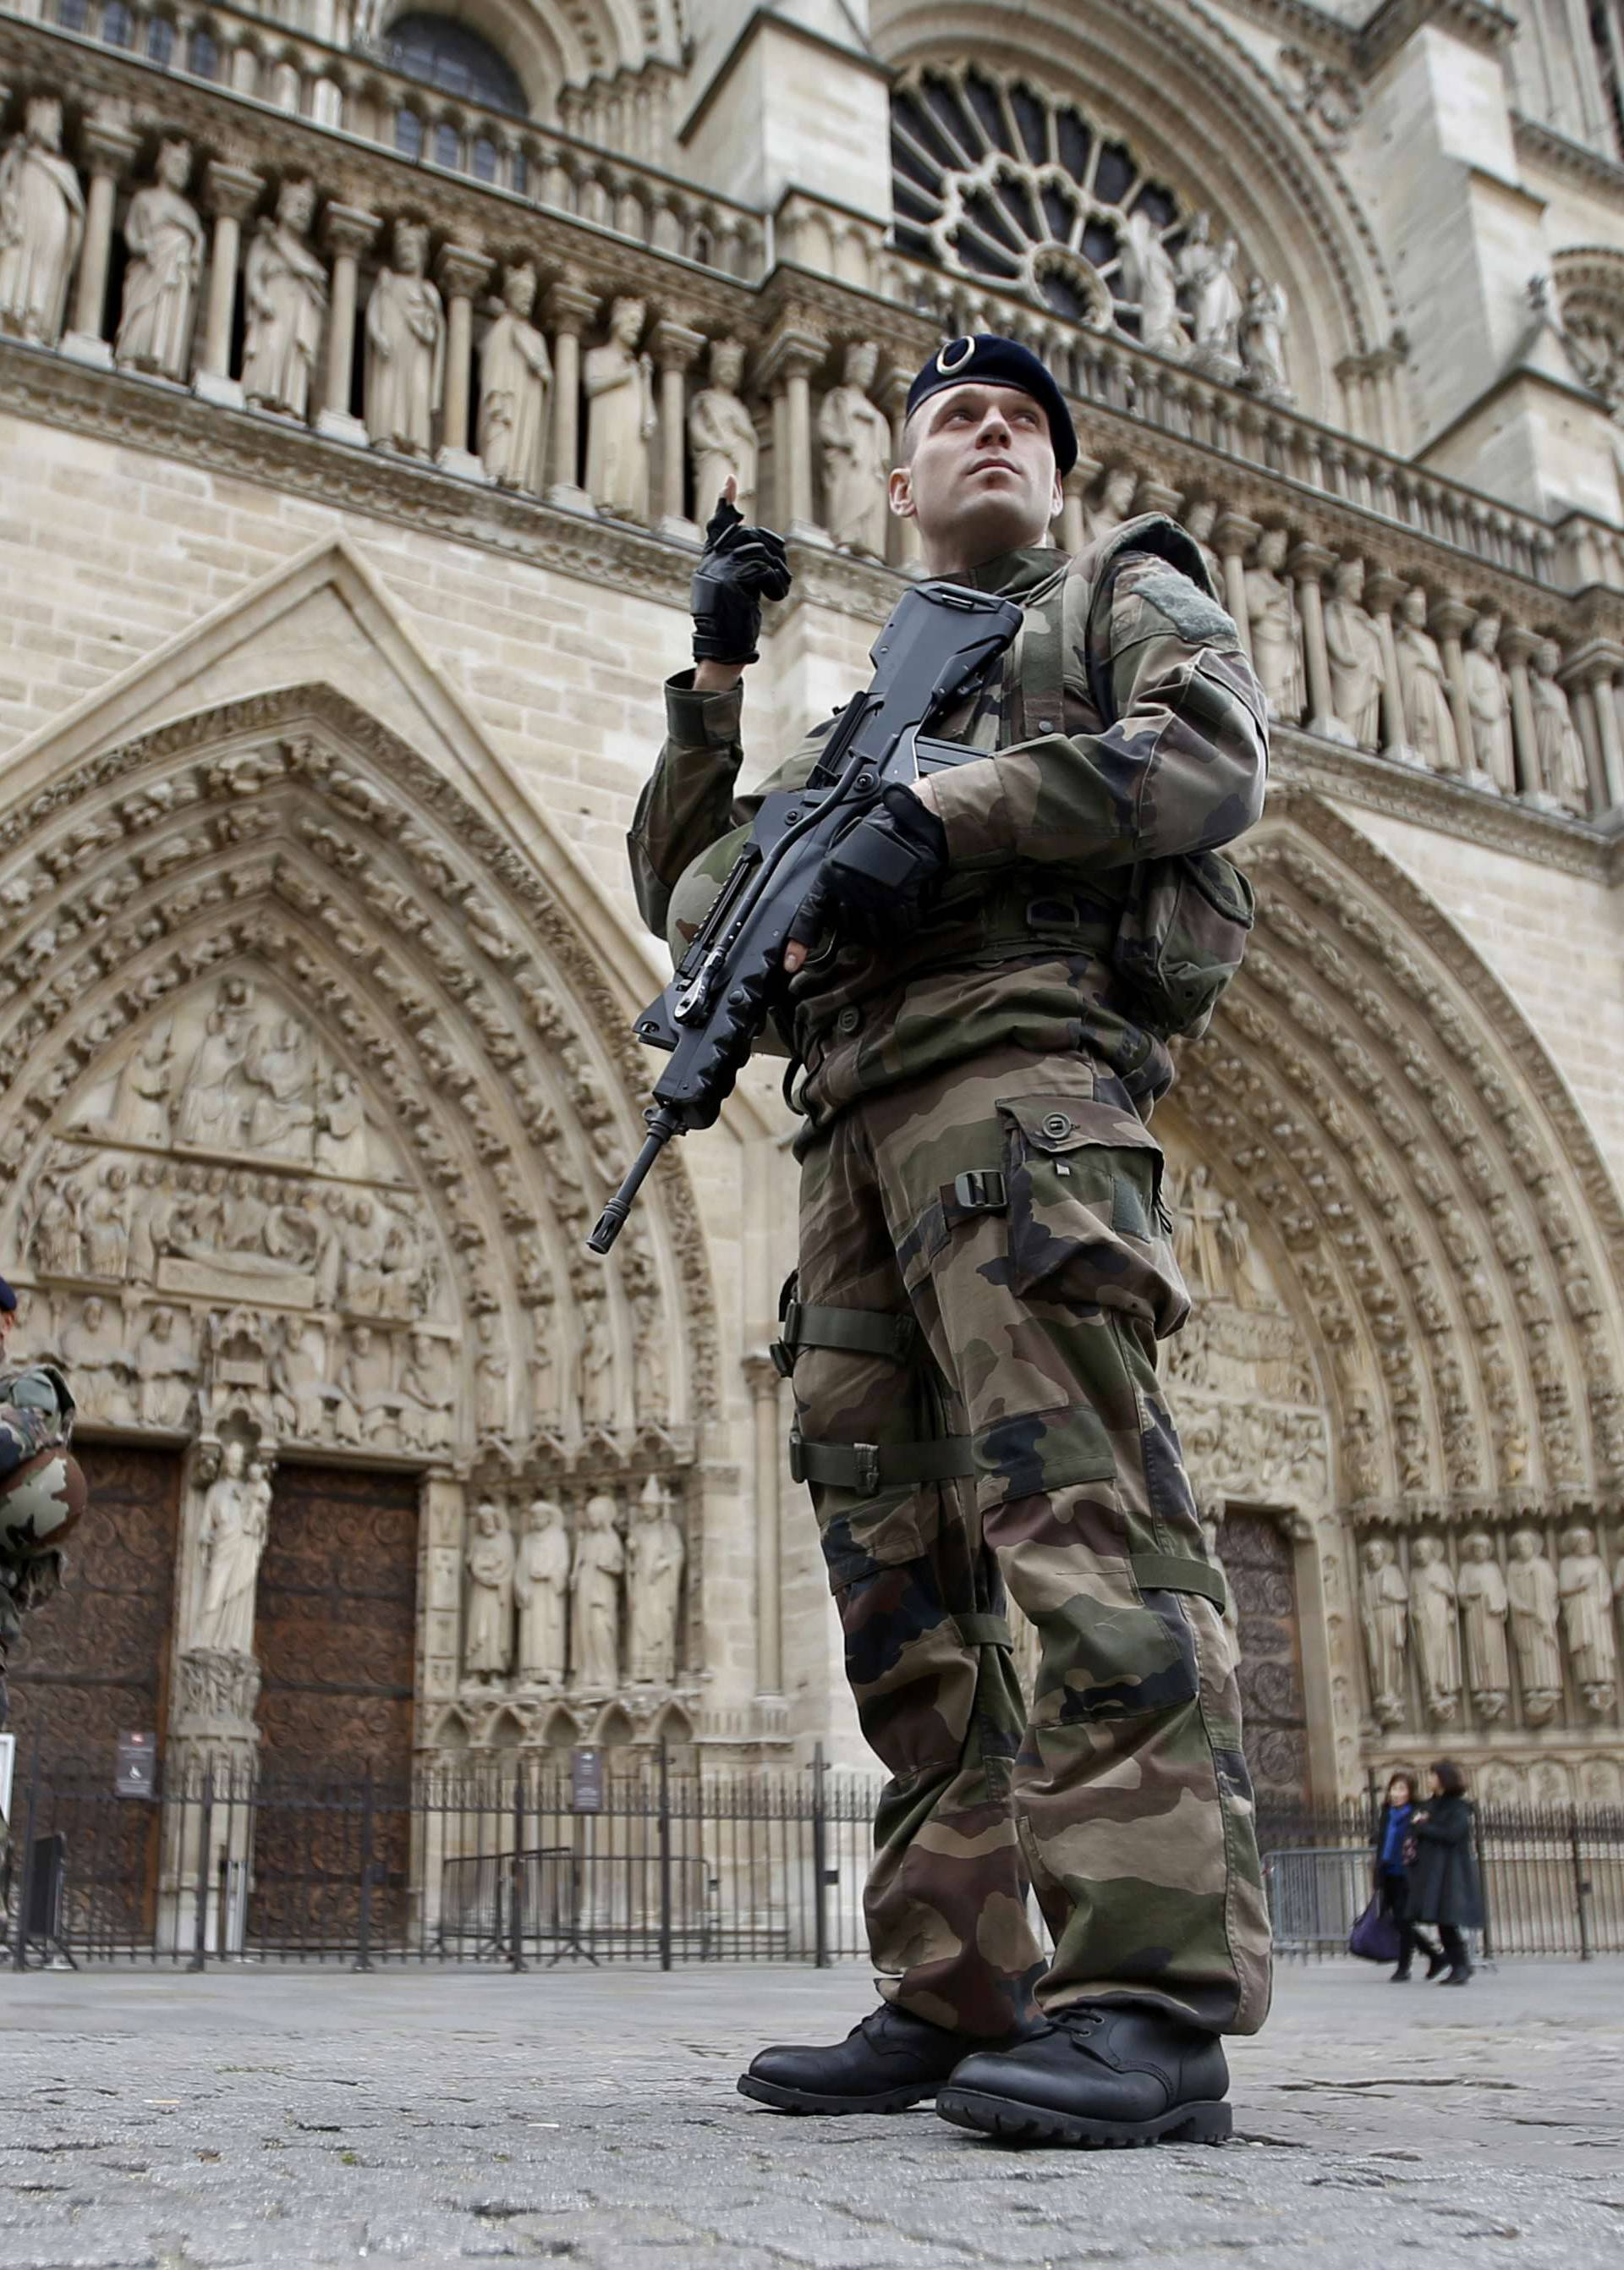 Soldiers patrol in front of the Notre Dame Cathedral in Paris